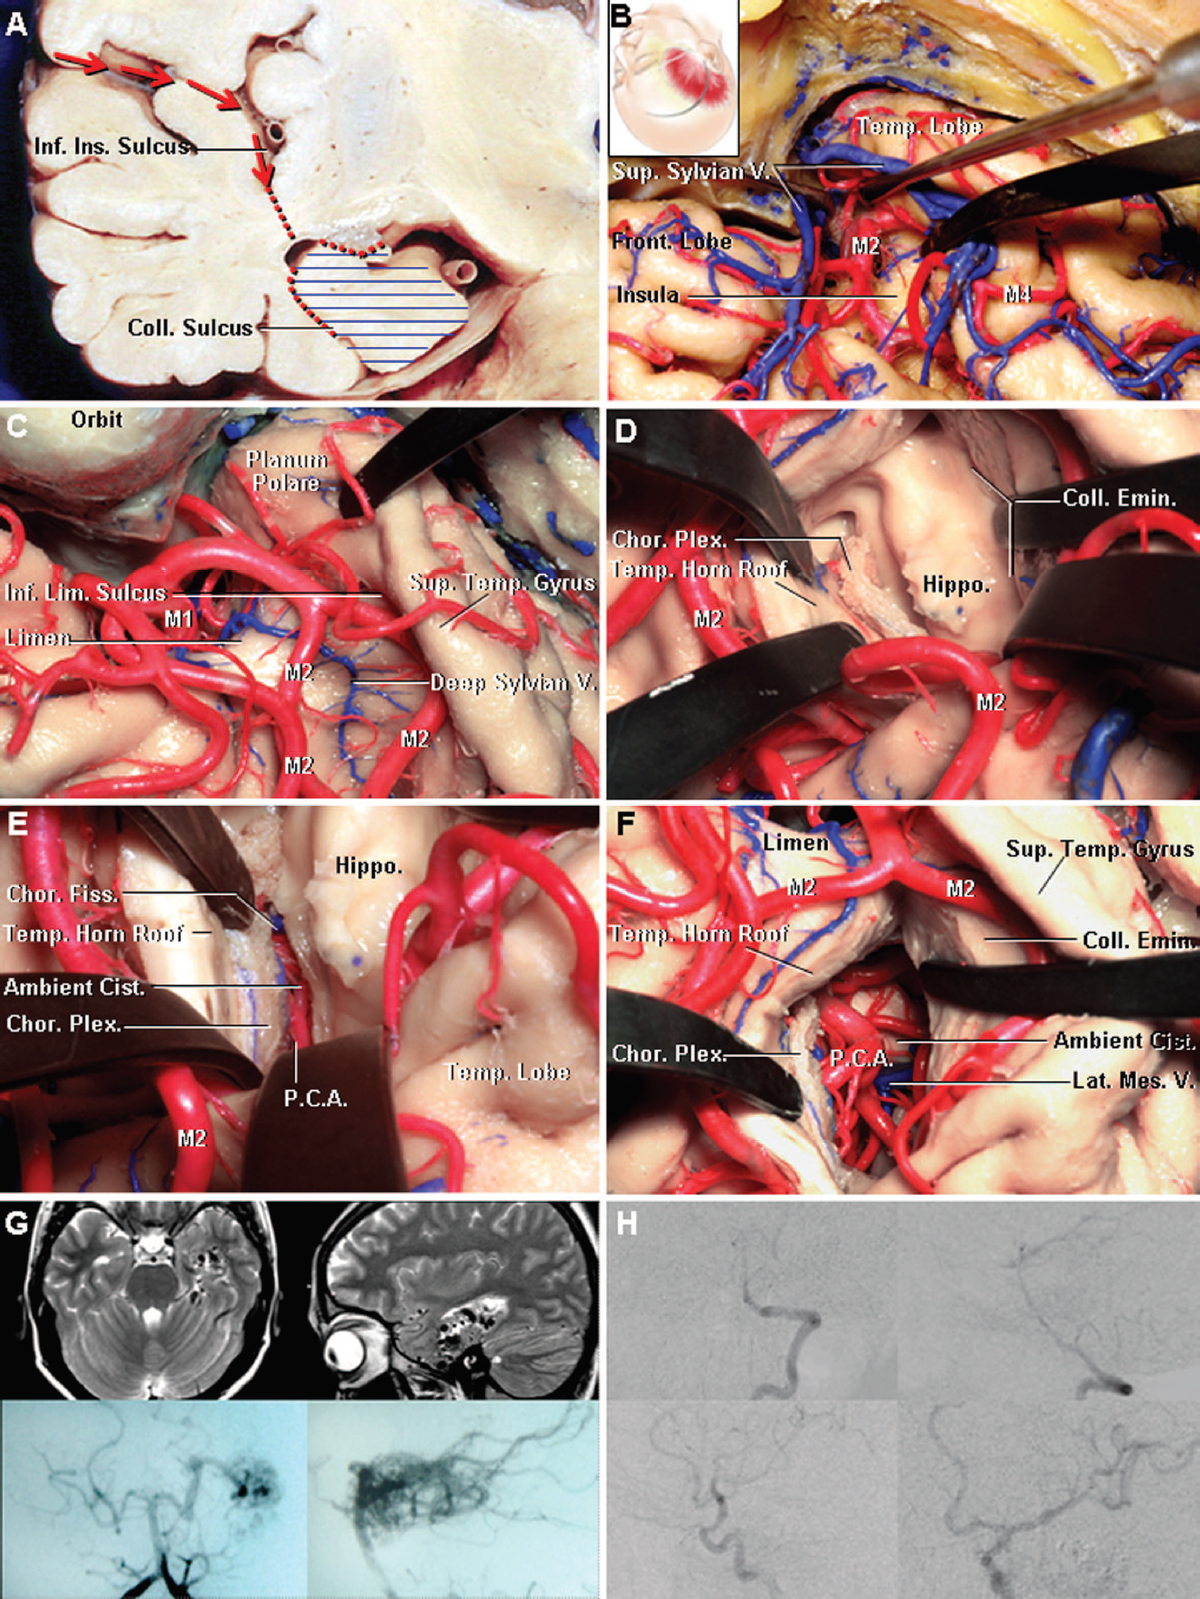 Figure 7. Images showing the transsylvian-transinsular approach. A, coronal section through the right temporal lobe near the inferior choroidal point. In this approach, the temporal horn is reached through the anterior portion of the inferior limiting sulcus of the insula, after widely opening the sylvian fissure. During an amygdalohippocampectomy for epilepsy, the amygdala, uncus, hippocampus, and parahippocampal gyrus are removed (horizontal blue lines). The medial disconnection of the medial temporal structures is achieved by opening the choroidal fissure. The lateral disconnection is directed through the collateral eminence and sulcus. B–F, stepwise cadaveric dissection demonstrating the transsylvian transinsular approach. B, right pterional craniotomy with exposure of the frontal and temporal lobes in an anatomic specimen. The sylvian fissure has been opened to expose the anterior portion of the insula and the bifurcation and M2 branches of the middle cerebral artery. C, anterior portion of the inferior limiting sulcus of the insula has been exposed. The M2 branches that course along the inferior limiting sulcus must be mobilized gently. D, M2 segment has been elevated and the inferior limiting sulcus has been opened to expose the temporal horn, hippocampus, choroid plexus, collateral eminence, and roof of the temporal horn. E, medial disconnection of the temporal lobe is accomplished by opening the choroidea fissure through the tenia fimbriae proceeding backward from the inferior choroidal point. The choroid plexus remains attached to the tenia in the roof of the temporal horn. F, amygdalohippocampectomy has been competed, exposing the vascular elements in the ambient cistern. G and H, pre- and postoperative studies of an arteriovenous malformation involving the anterior and middle portions of the left medial temporal region. A transsylvian-transinsular approach was combined with a transsylvian-transcisternal approach to achieve a complete removal. G, preoperative magnetic resonance imaging scans (upper left, axial; upper right, sagittal) and vertebral angiograms (lower left, anteroposterior view; lower right, lateral view). H, postoperative carotid (upper left, anteroposterior view; upper right, lateral view) and vertebral angiograms (lower left, lateral view; lower right, anteroposterior view) showing complete removal. Chor., choroid, choroidal; Cist., cistern; Coll., collateral; Emin., eminence; Fiss., fissure; Front., frontal; Hippo., hippocampus; Inf., inferior; Ins., insular; Lat., lateral; Lim., limiting; M1, M2, M4, segments of the middle cerebral artery; Mes., mesencephalic; P.C.A., posterior cerebral artery; Plex., plexus; Sup., superior; Temp., temporal; V., vein. (Images courtesy of AL Rhoton, Jr.)